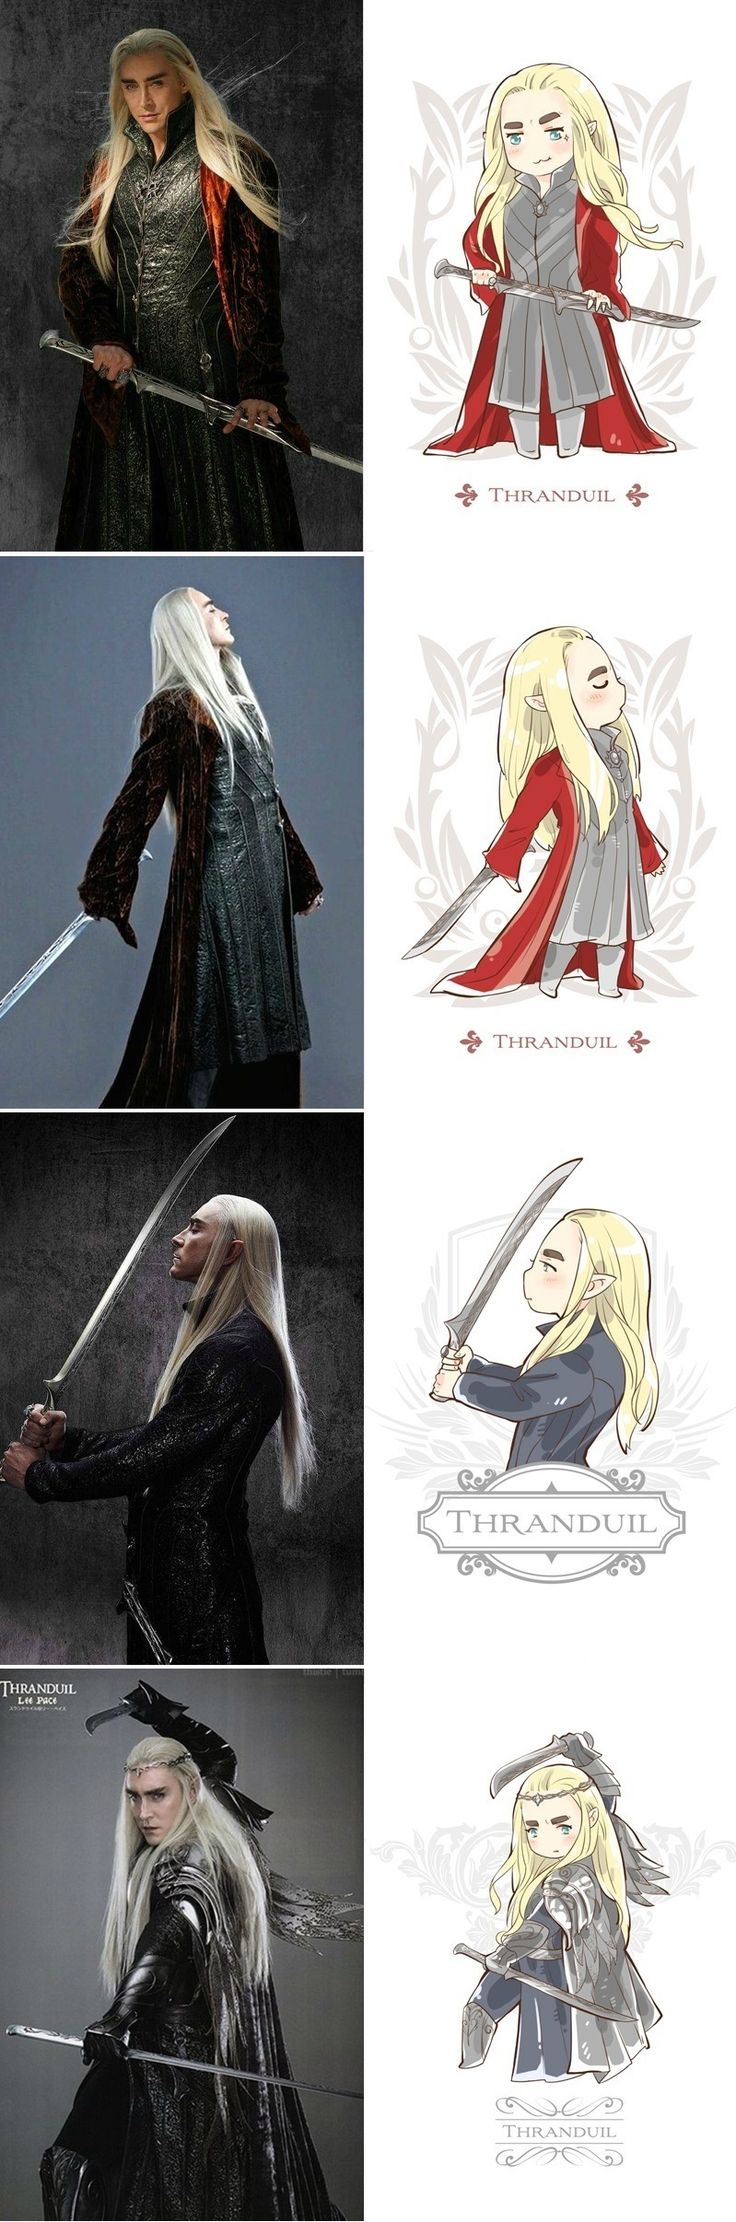 Thranduil fanart part 2                                                                                                                                                     More